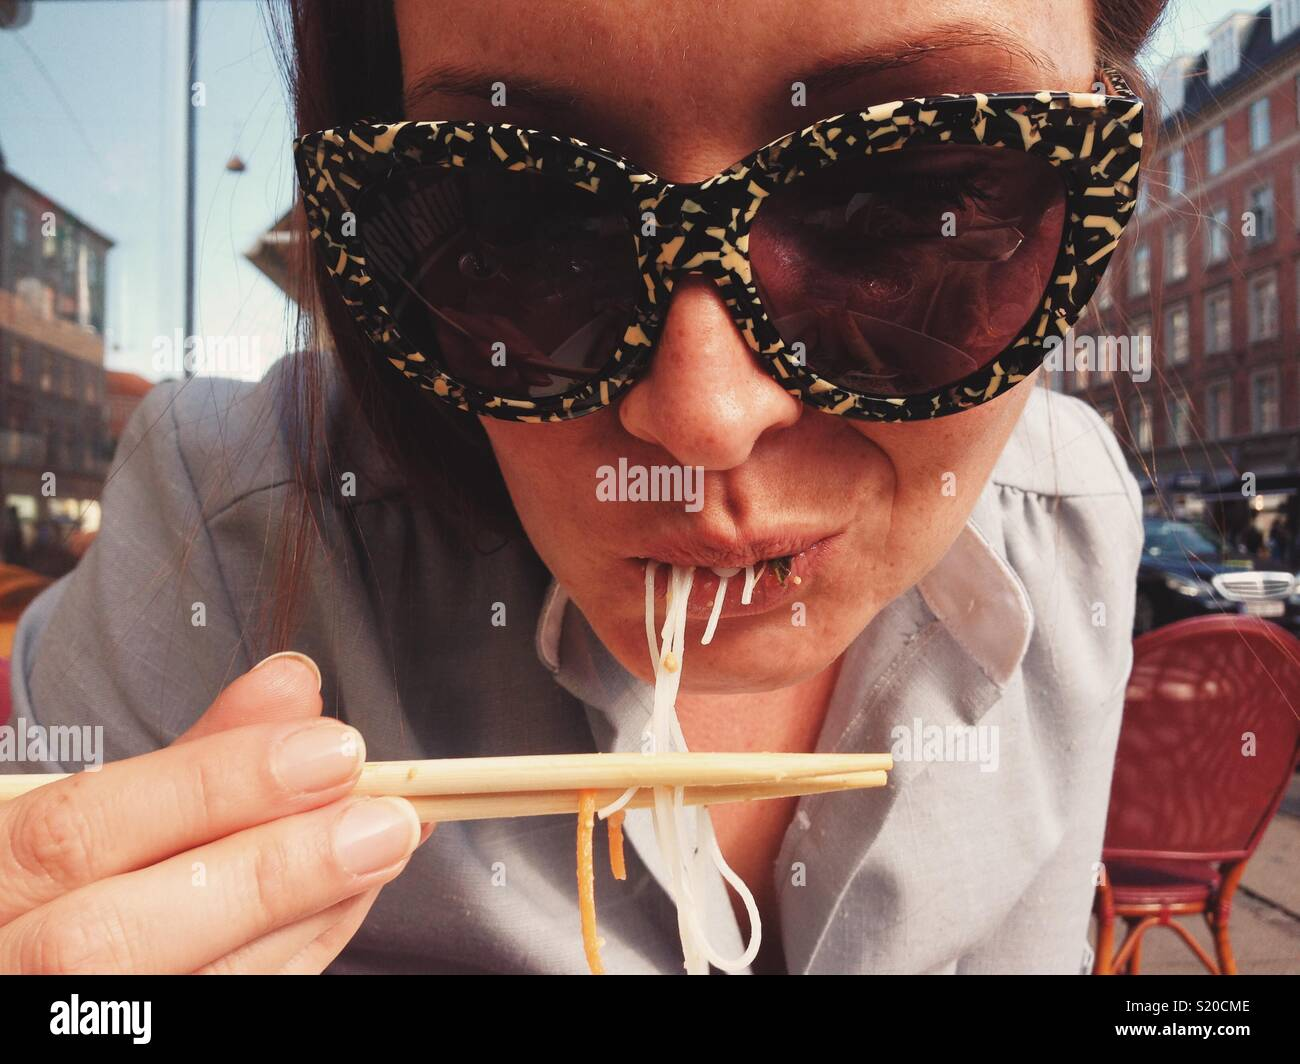 Woman in sunglasses eating noodles with chopsticks - Stock Image